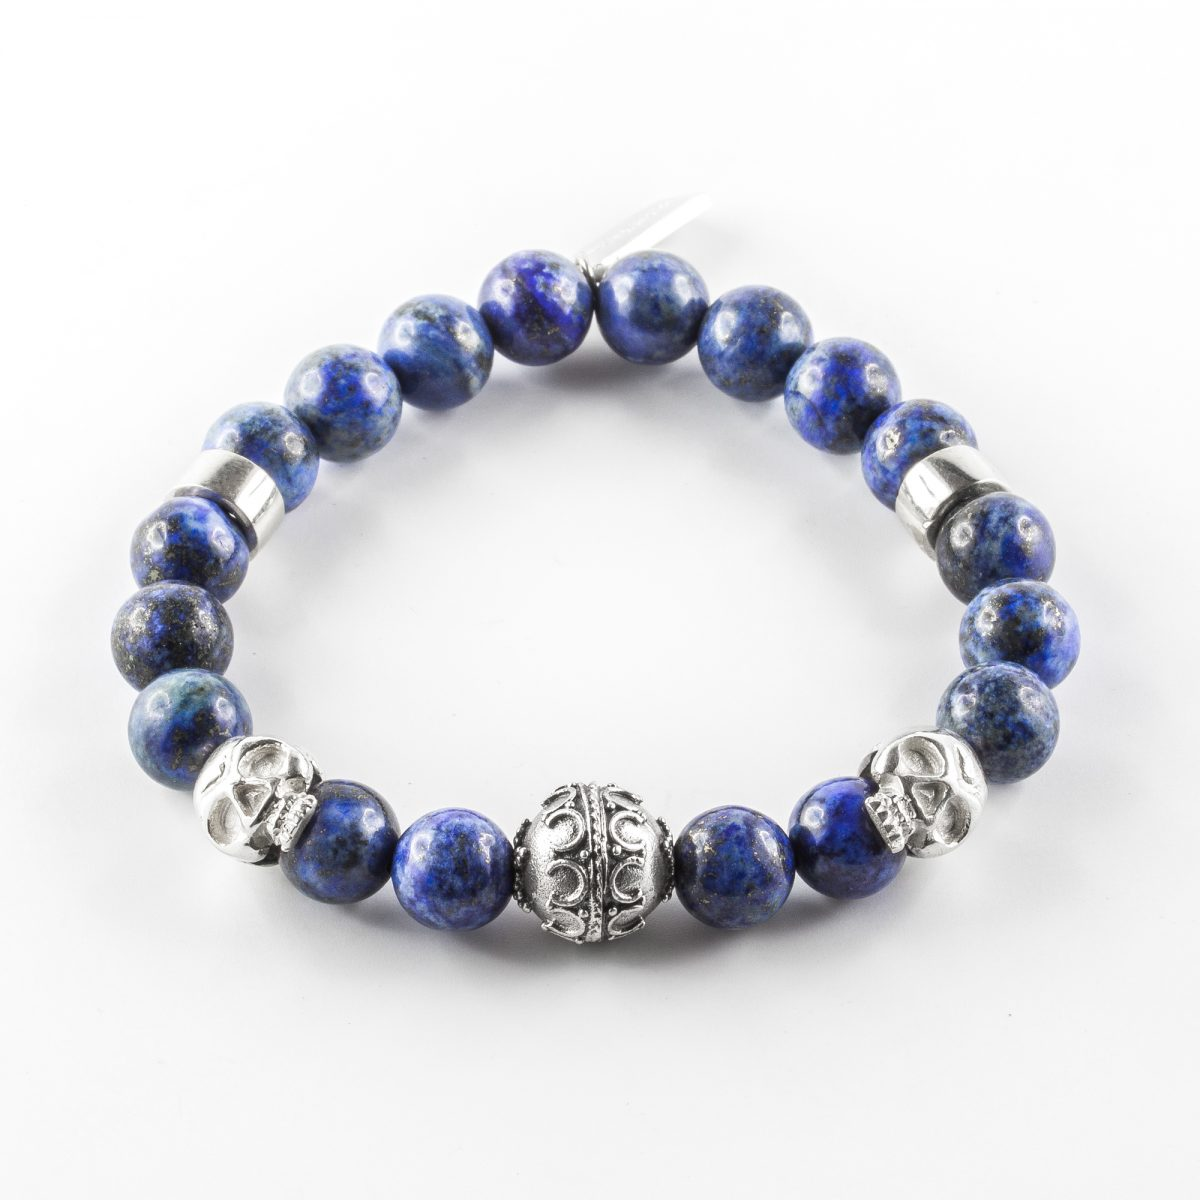 Bracelet with lapis lazuli and silver skull